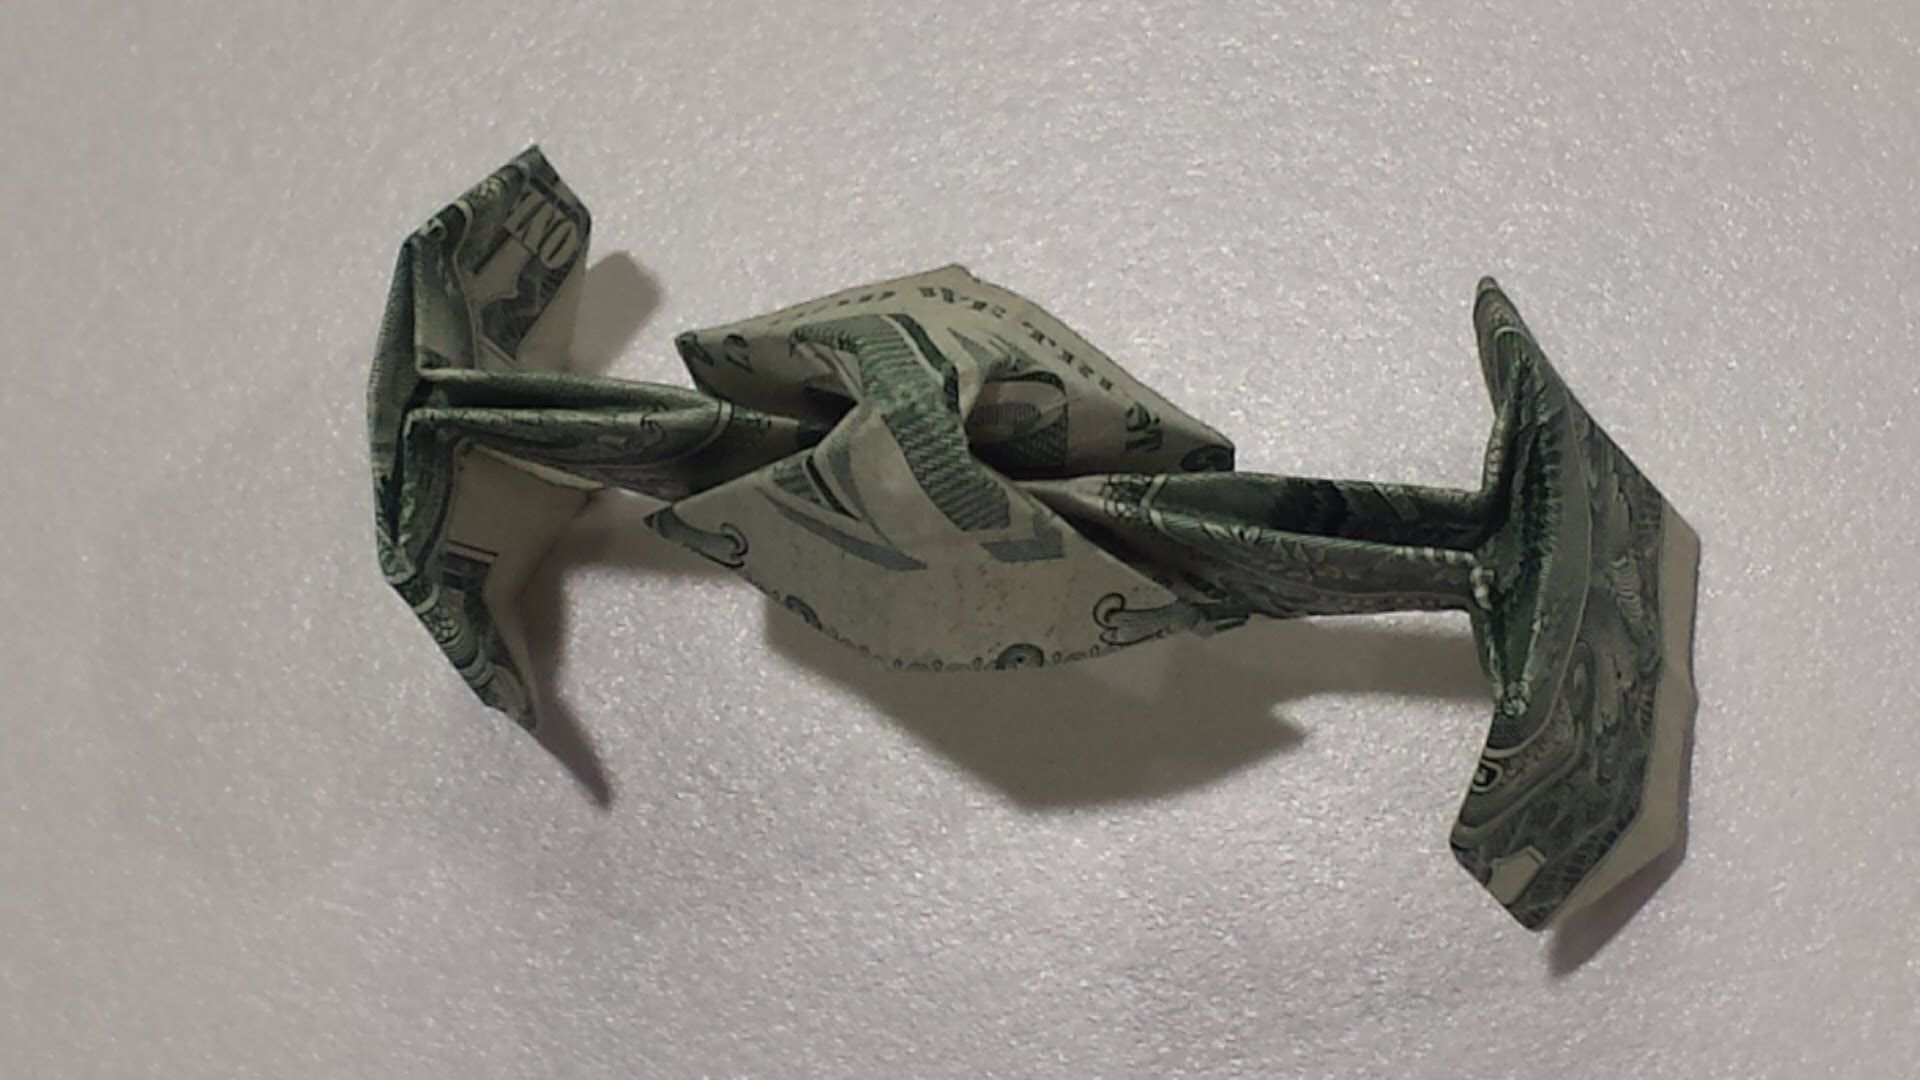 Star wars tie fighter how to fold a dollar origami tie fighter in this video i will show you step by step how to fold a single dollar bill into the star wars tie fighter jeuxipadfo Image collections